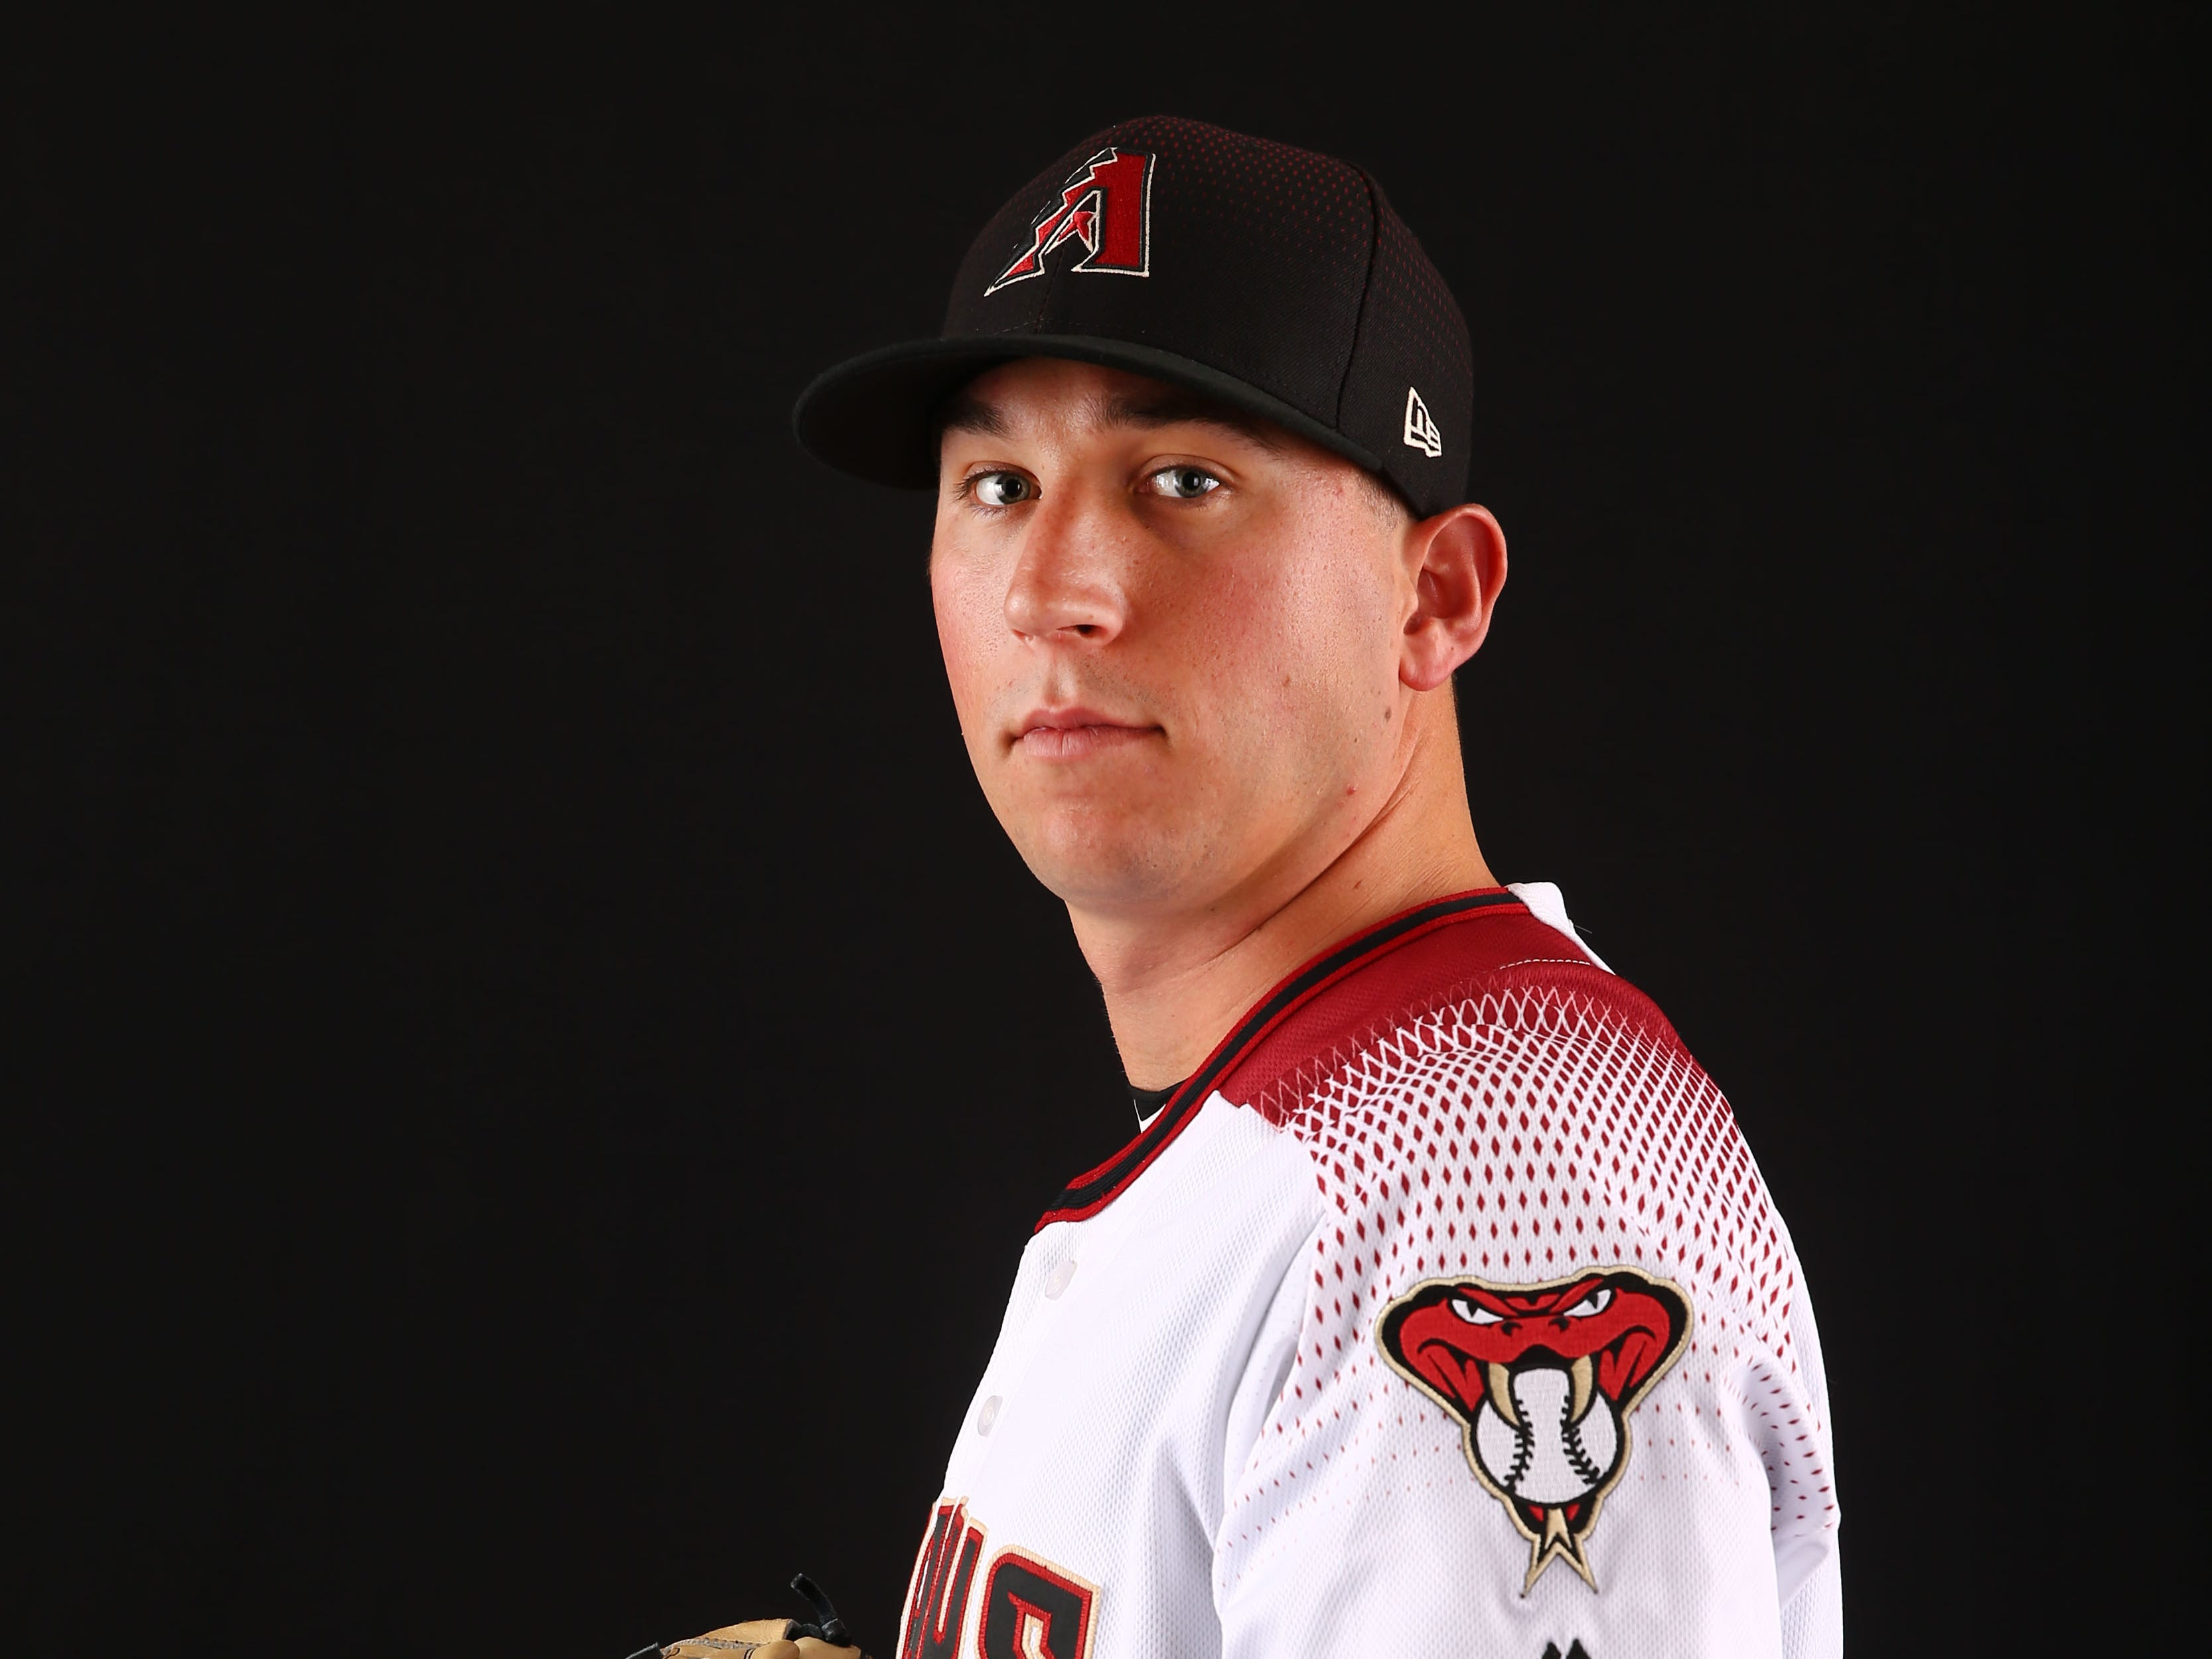 Taylor Widener of the Arizona Diamondbacks poses for a photo during the annual Spring Training Photo Day on Feb. 20 at Salt River Fields in Scottsdale, Ariz.